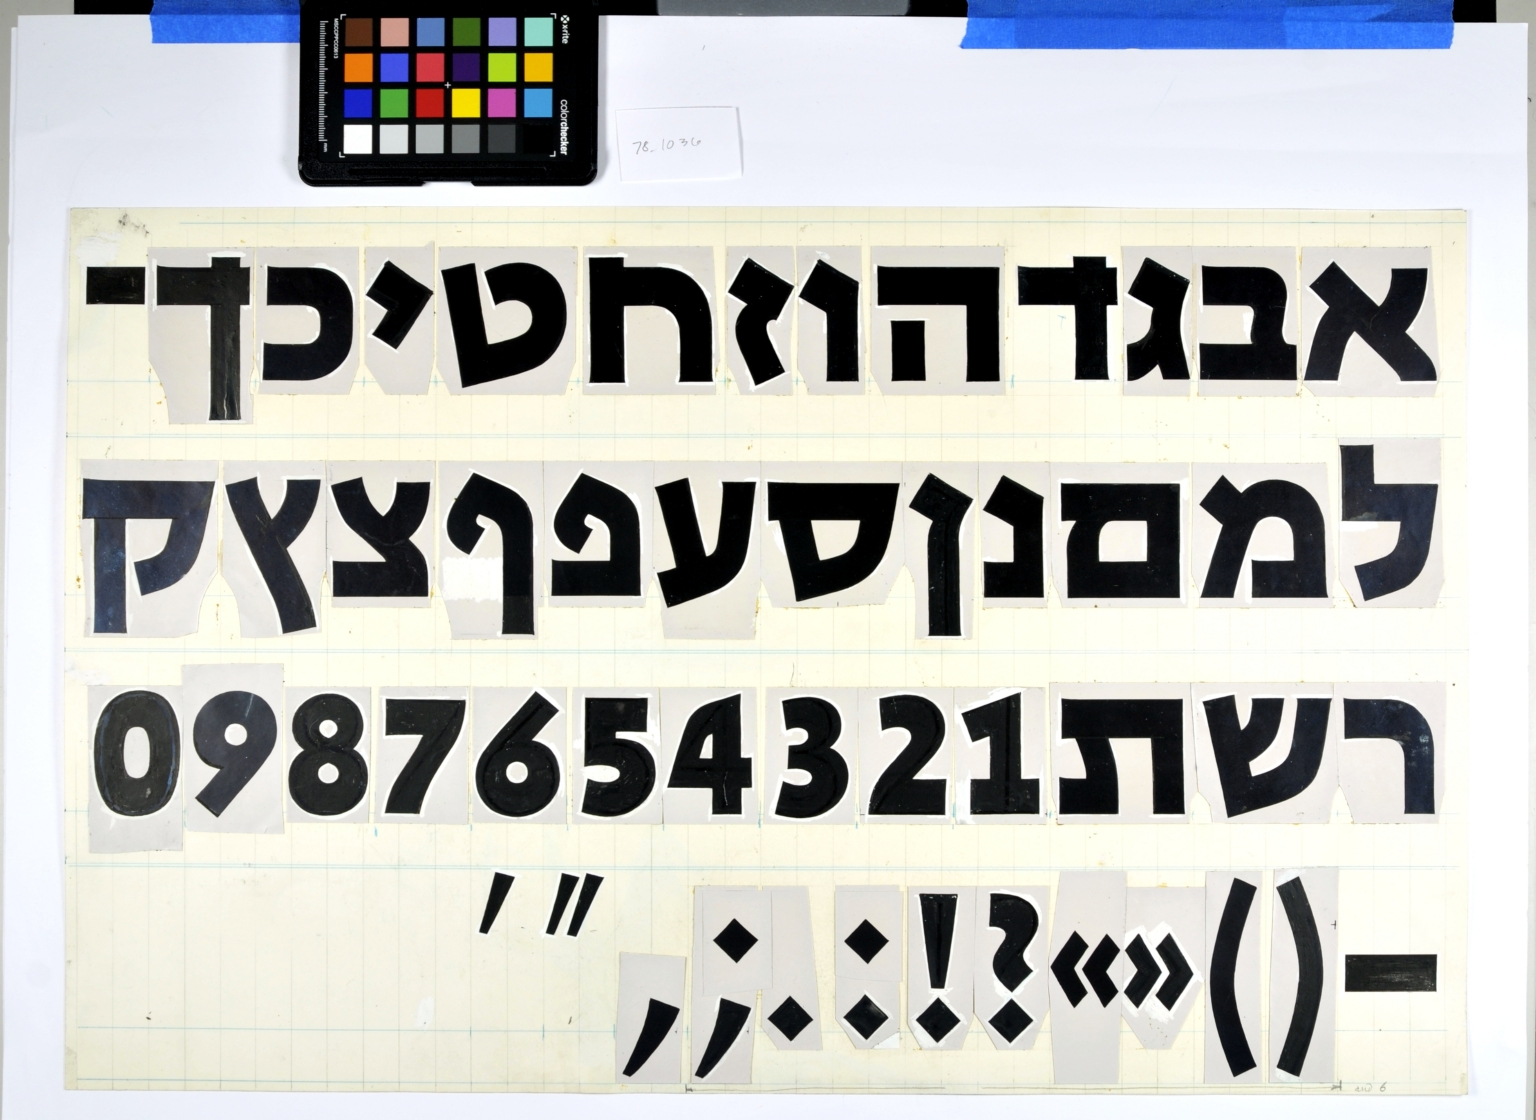 Mechanical for David Hebrew typeface family: even-stroke style, bold weight